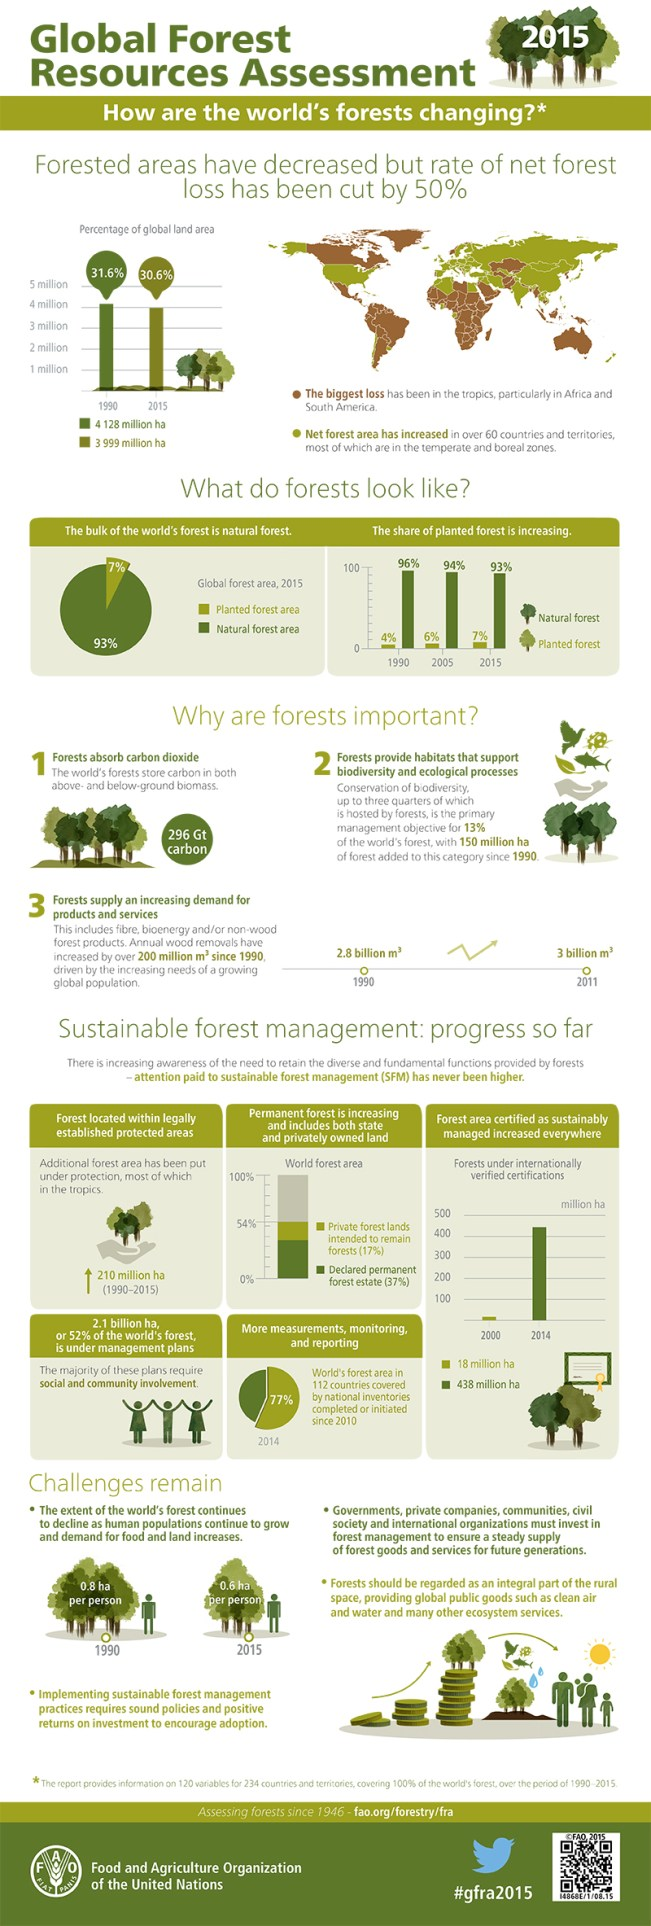 fao-infographic_forests